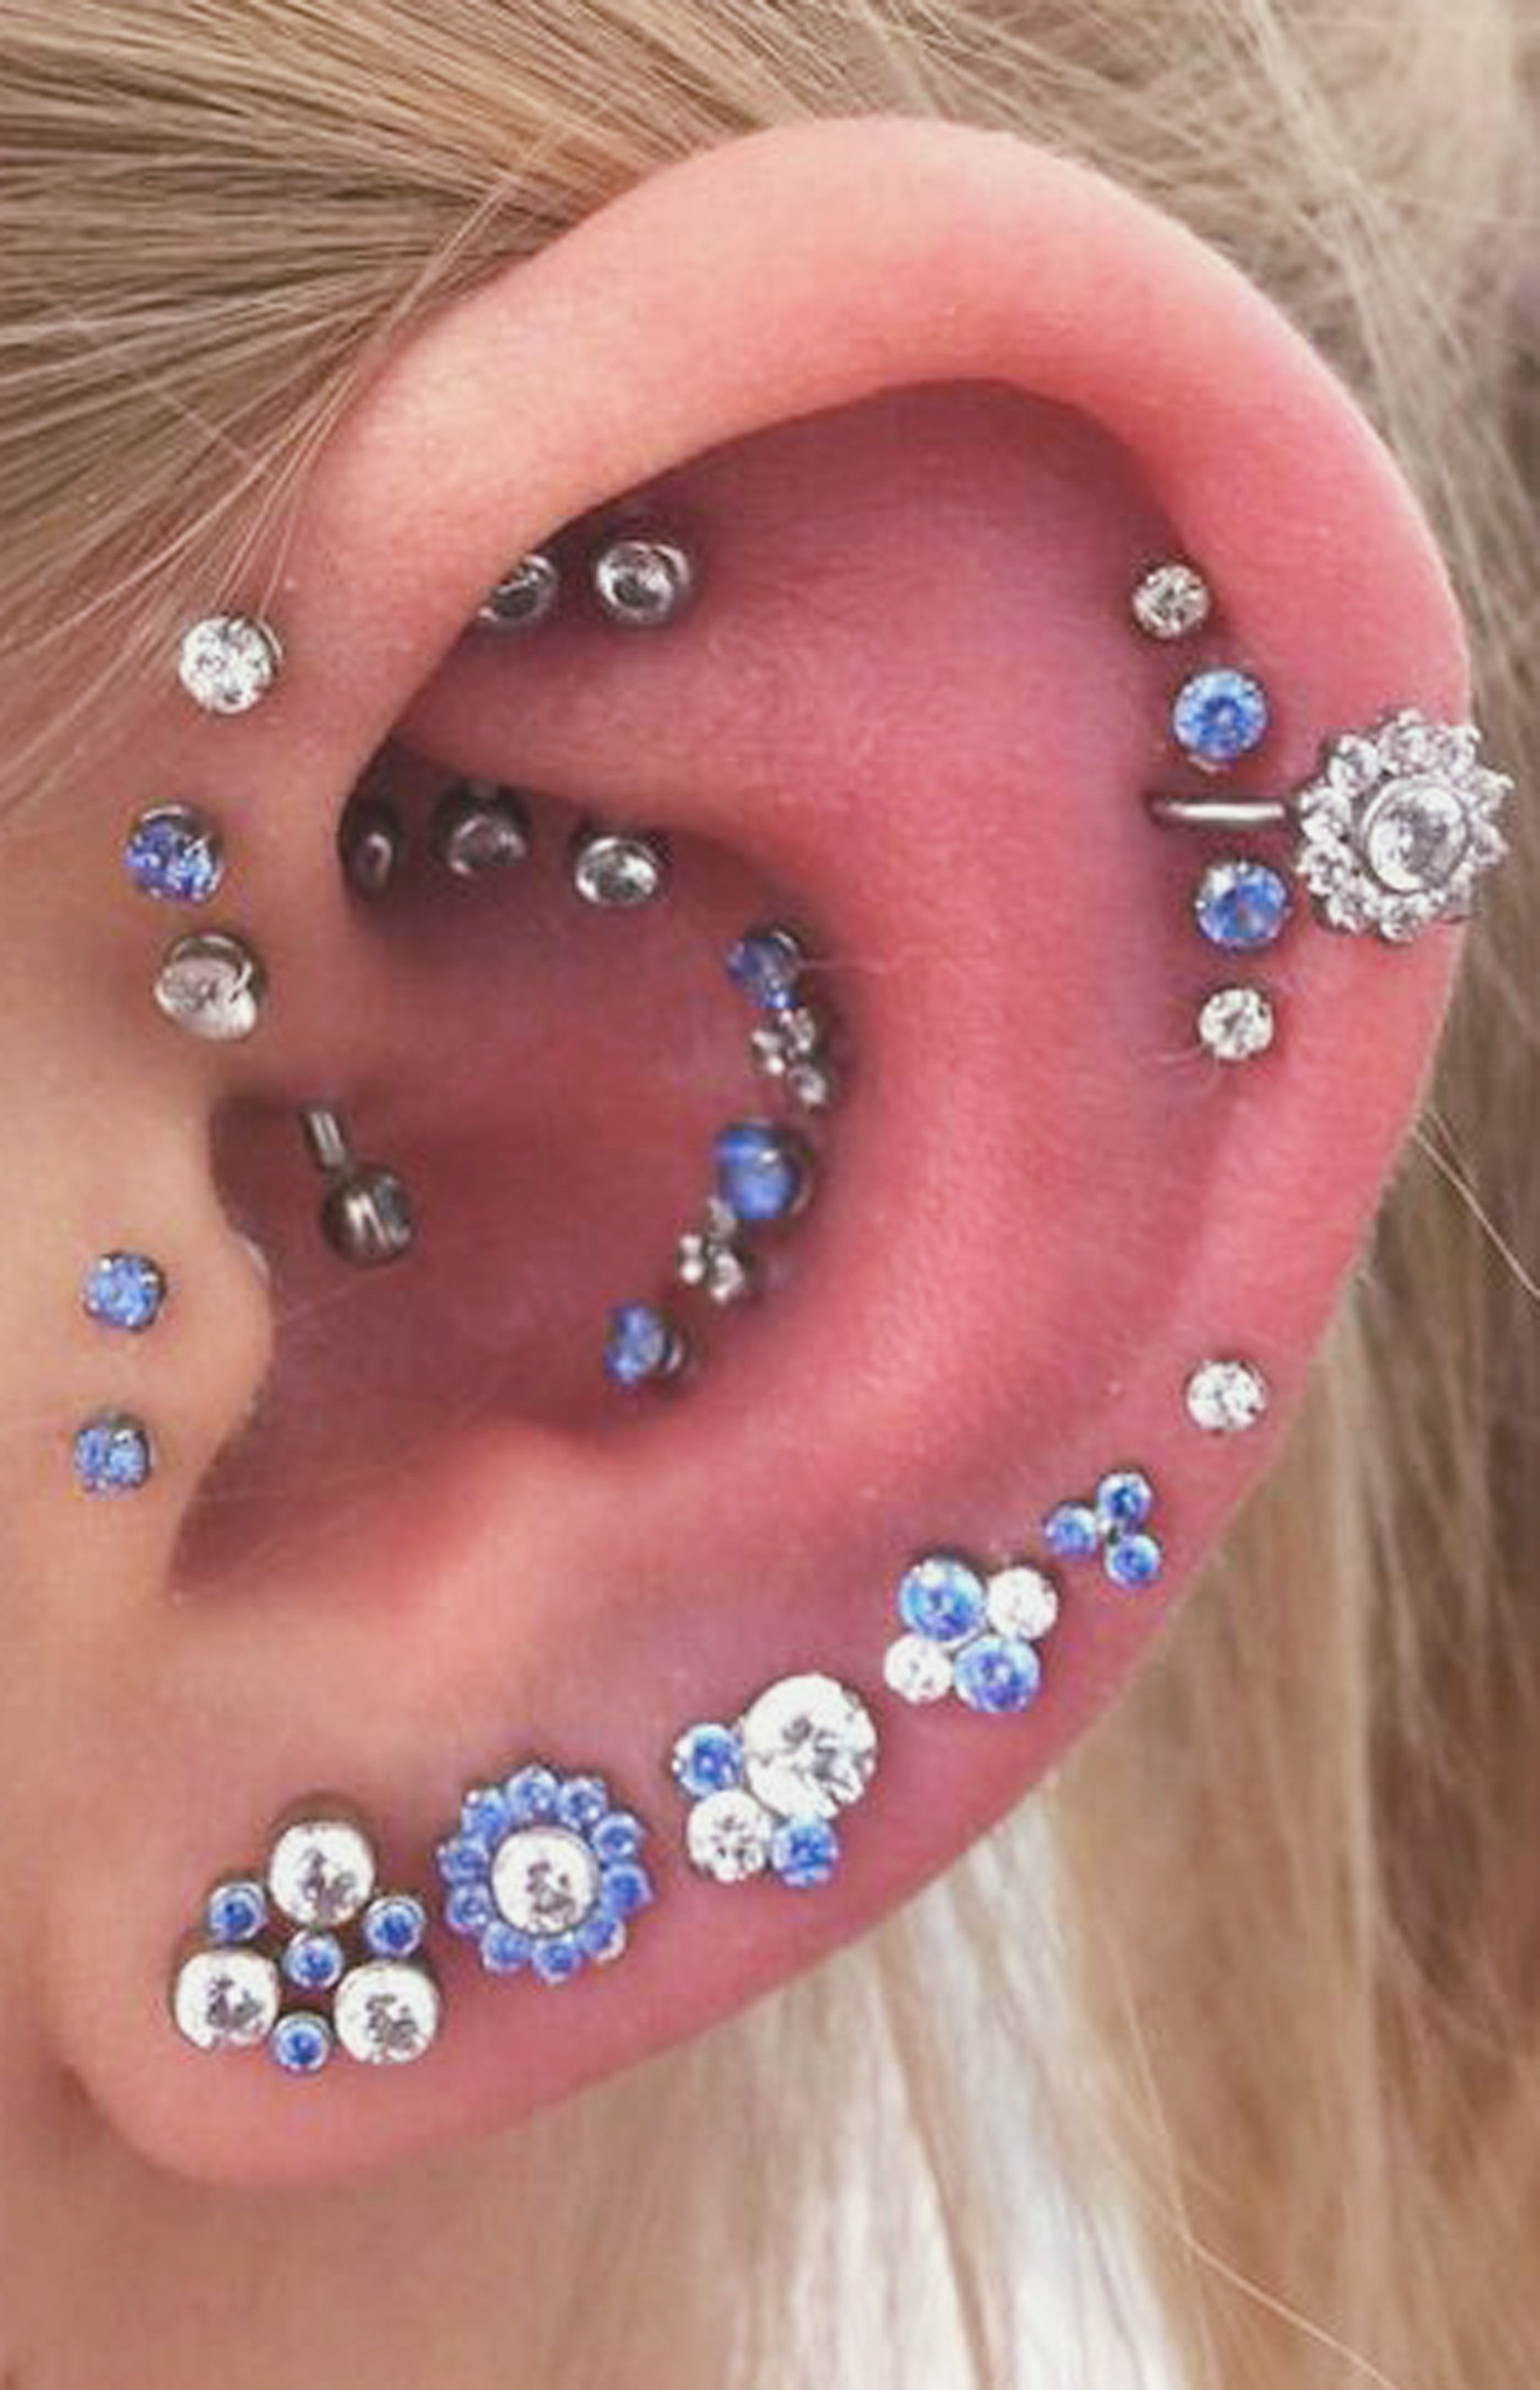 Black Crystal Triple Cartilage Tragus Helix Stud Earring Jewelry Piercing